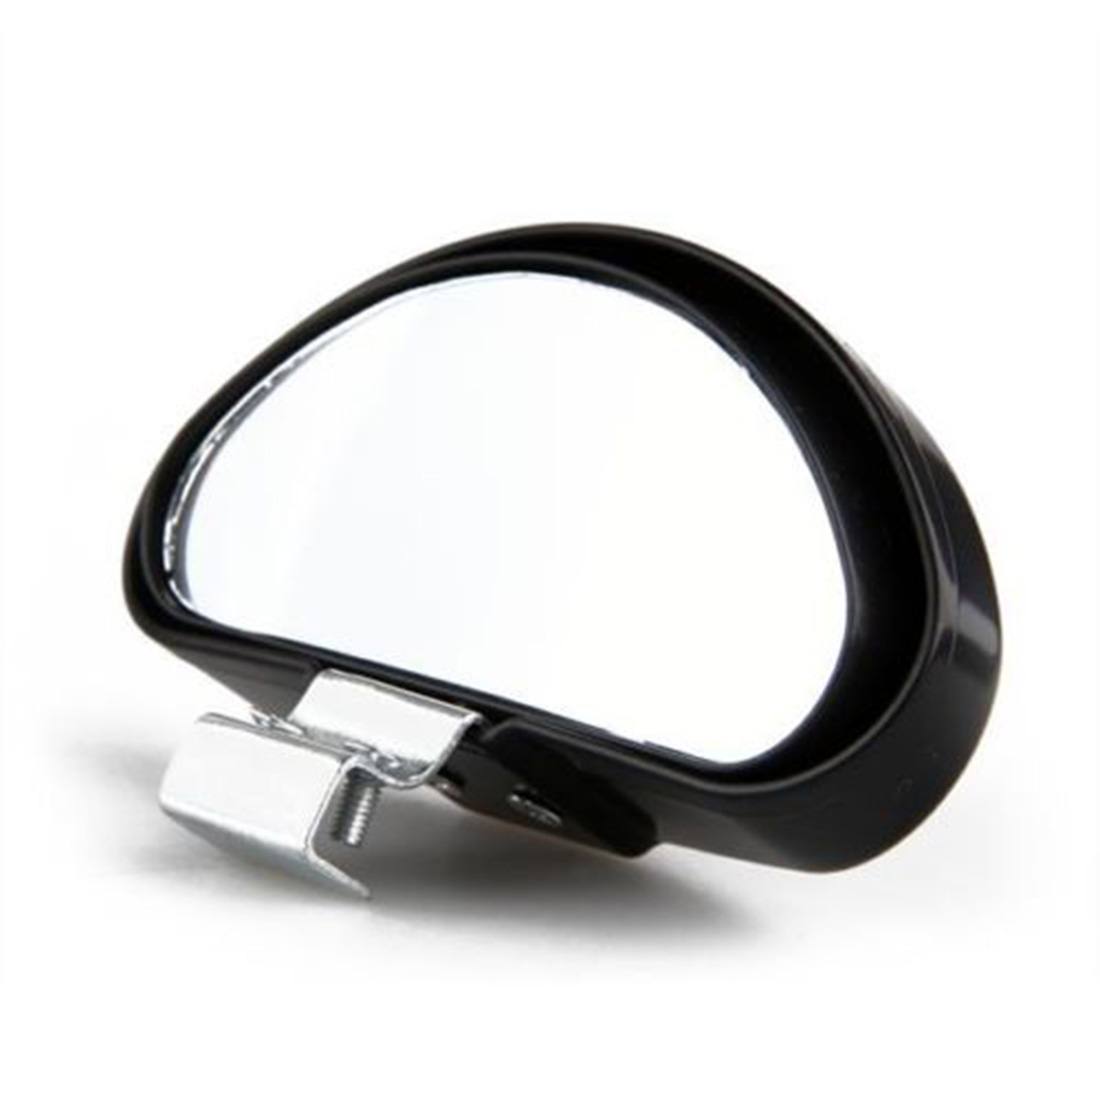 Hot Sale Pvc Car Mirror Adjustable Wide Angle View Blind